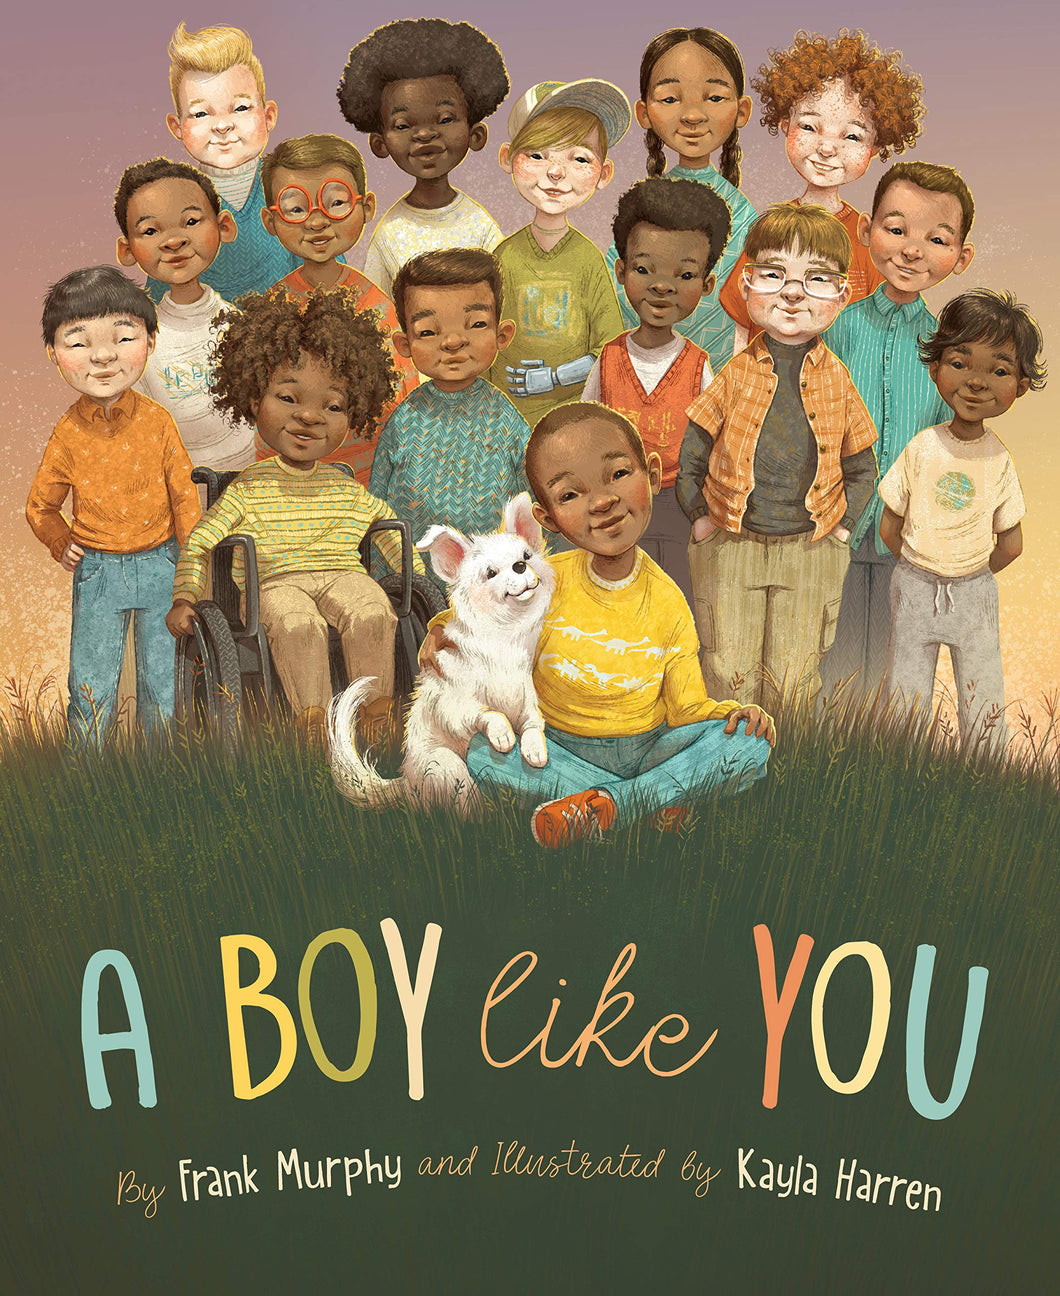 A Boy like You Book